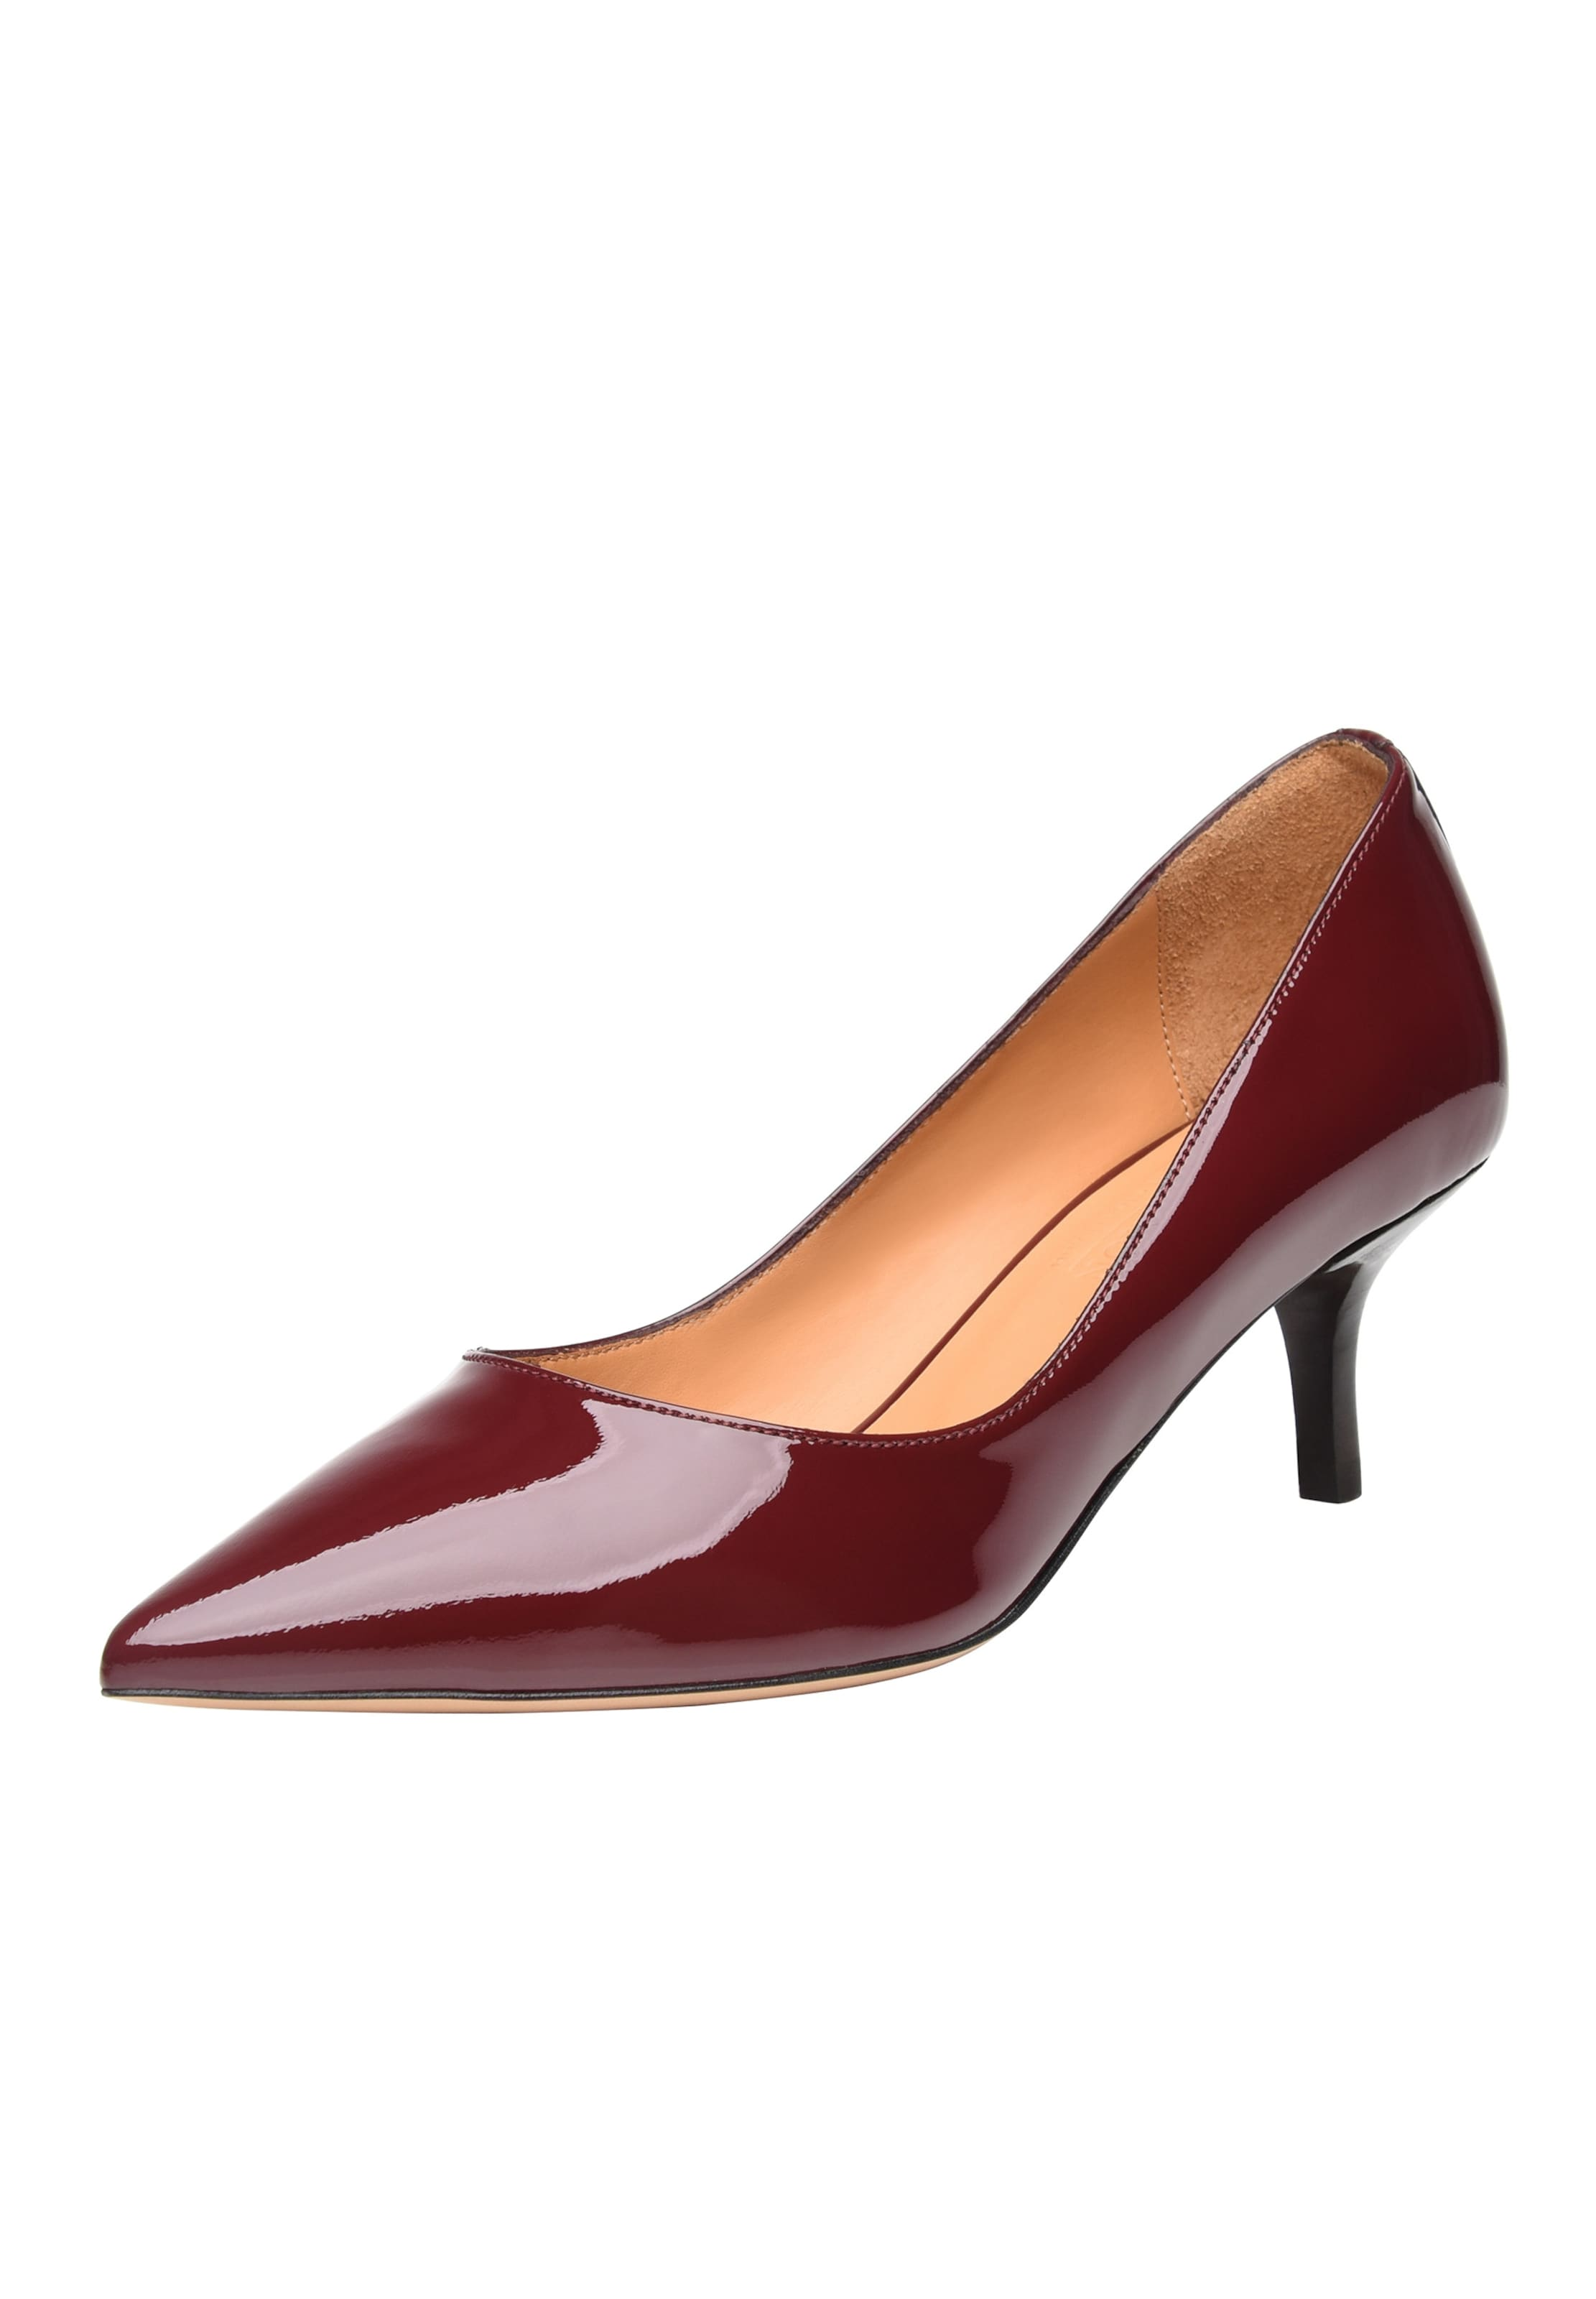 Schwarz Pumps Shoepassion In 'no1511' HellorangeRot tshdCrQBxo